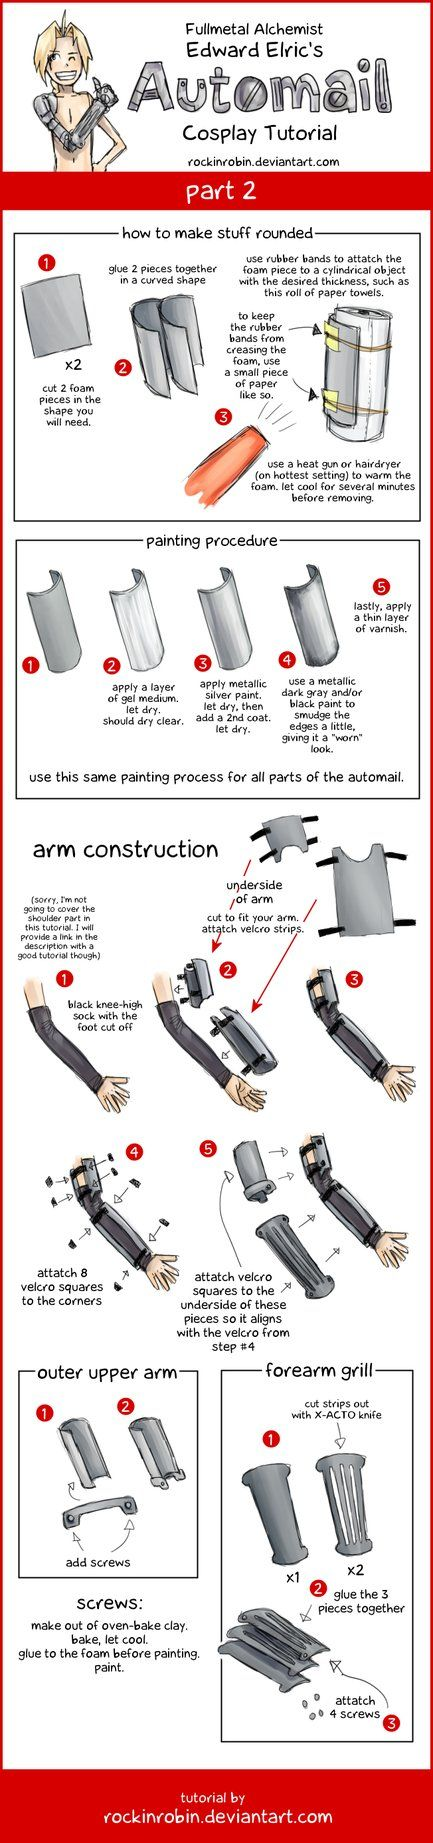 Cosplay Automail Fullmetal Alchemist Tutorial Part 2 by rockinrobin on DeviantArt